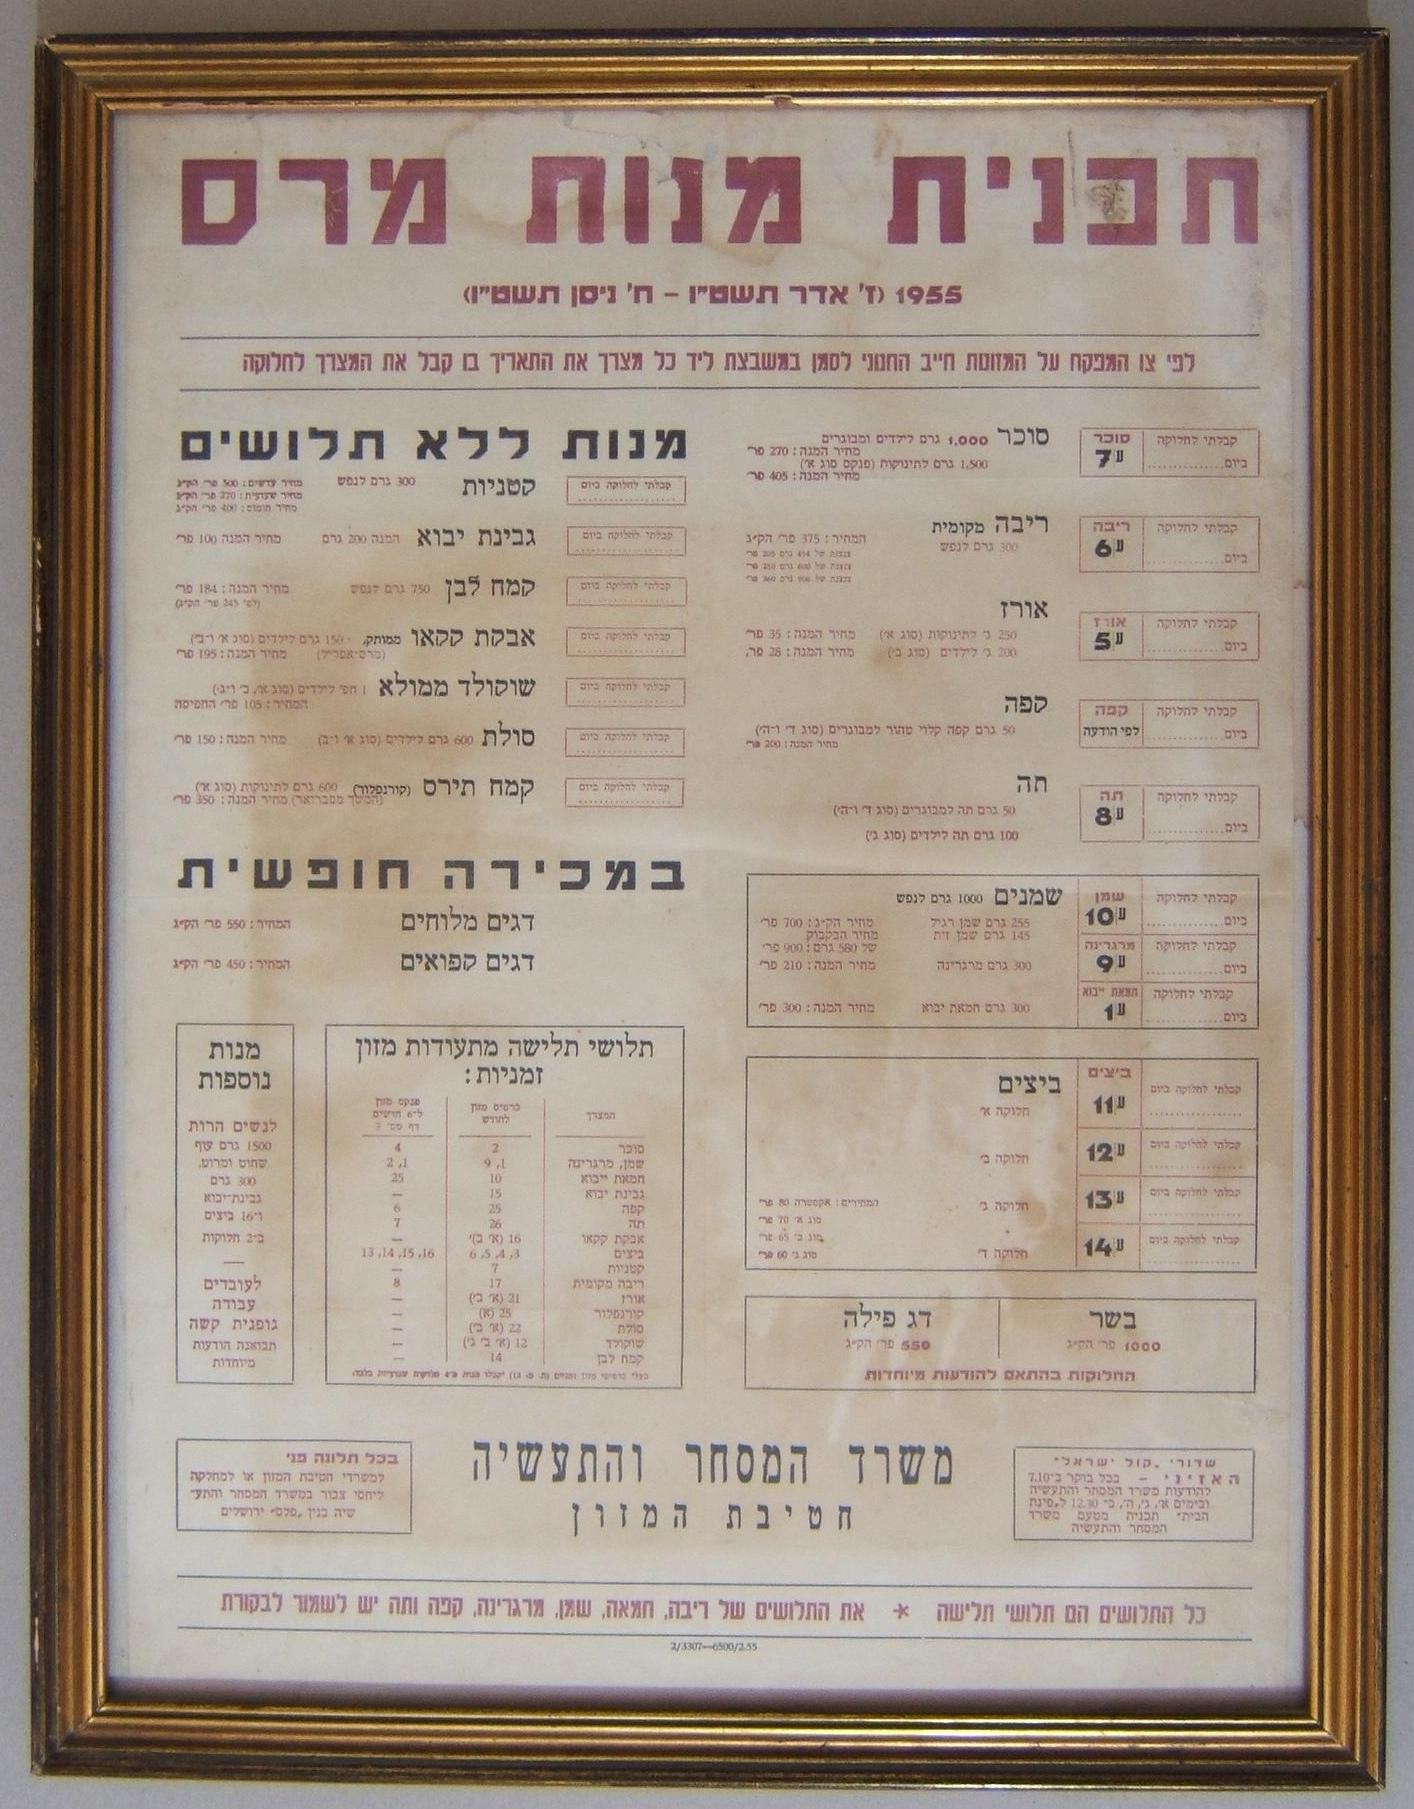 Israeli austerity-period ('Tzena', 1949-59) framed pricelist issued by the Ministry of Trade and Industry's Department of Food, intended for display at participating shops. This pr